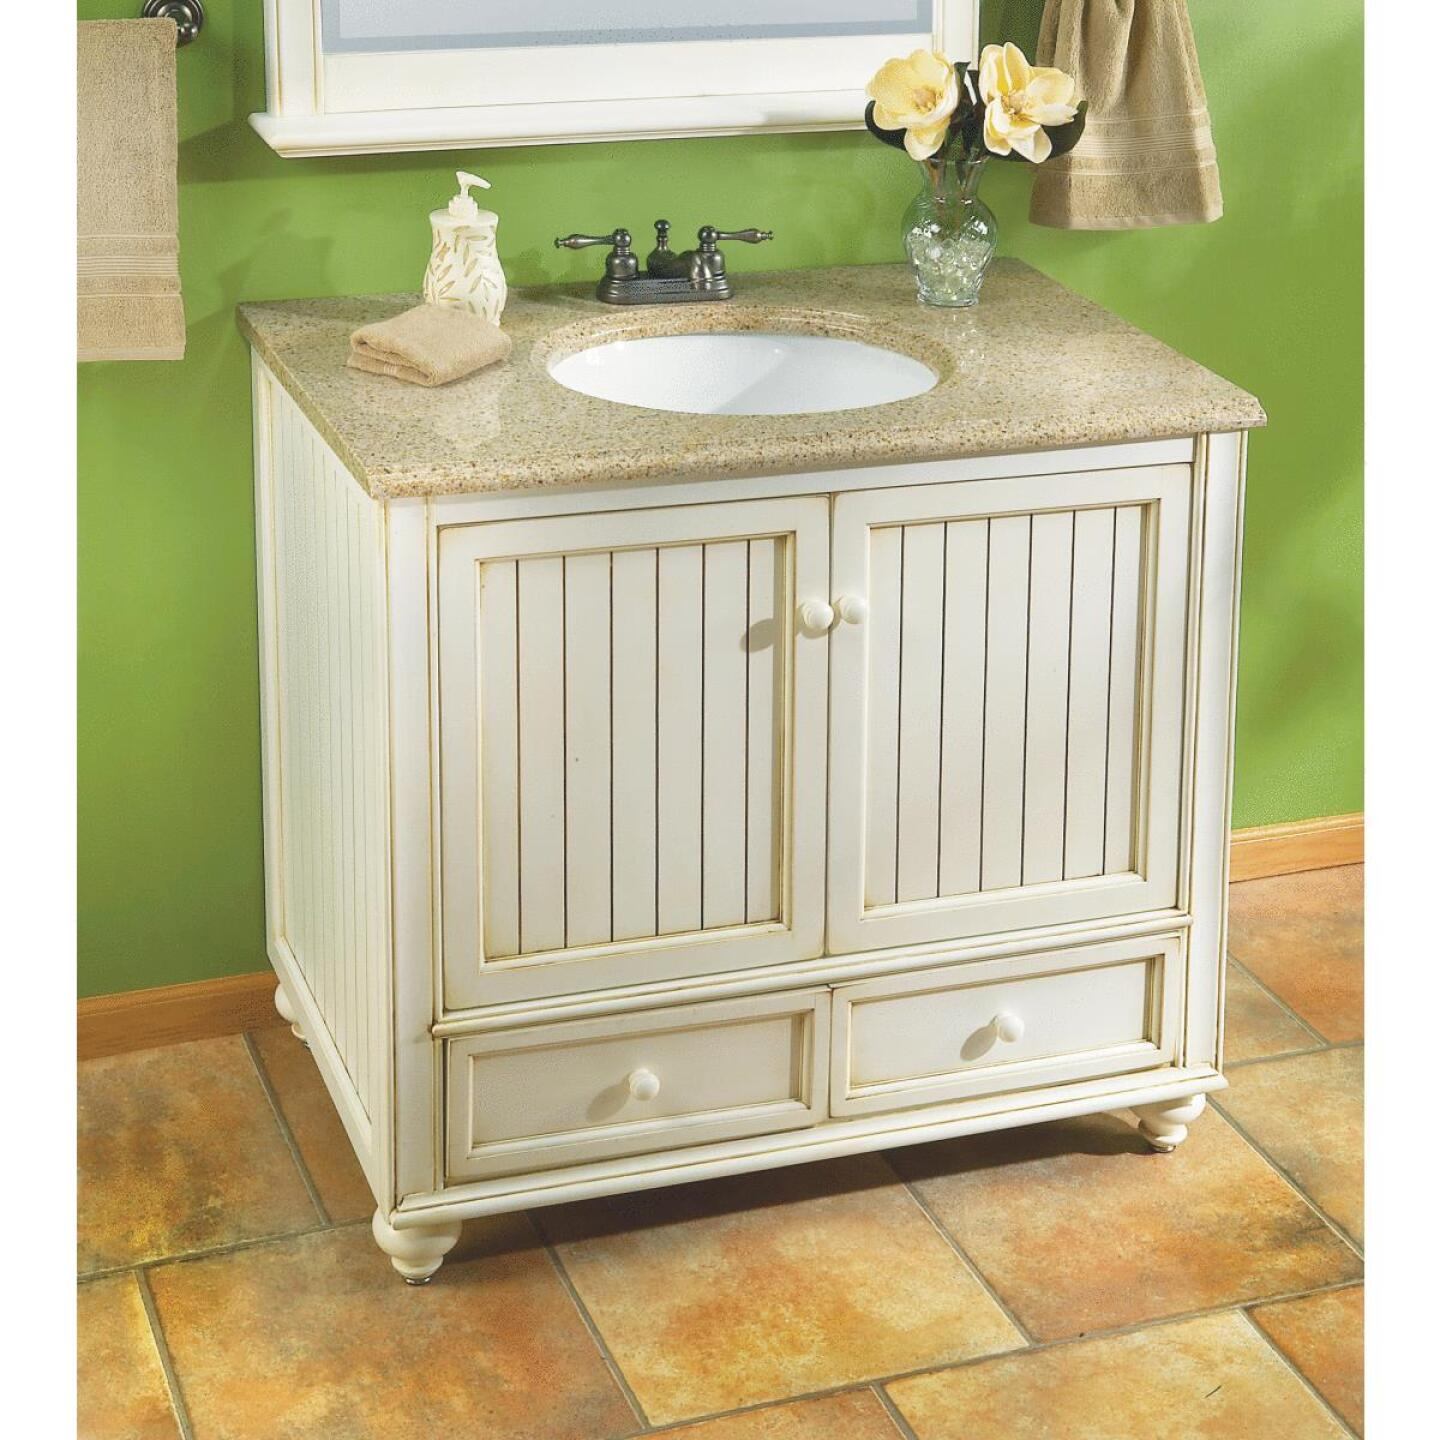 Sunny Wood Bristol Beach White 36 In. W x 34 In. H x 21 In. D Vanity Base, 2 Door/2 Drawer Image 4